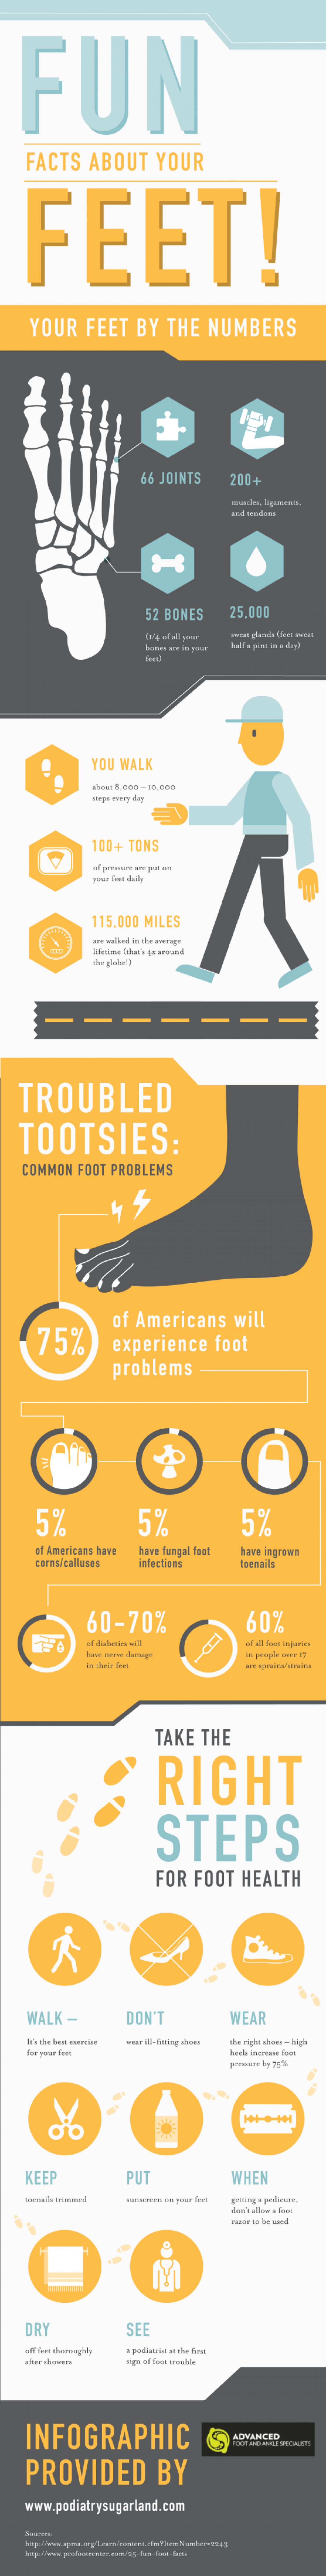 Fun Facts About Your Feet Infographic